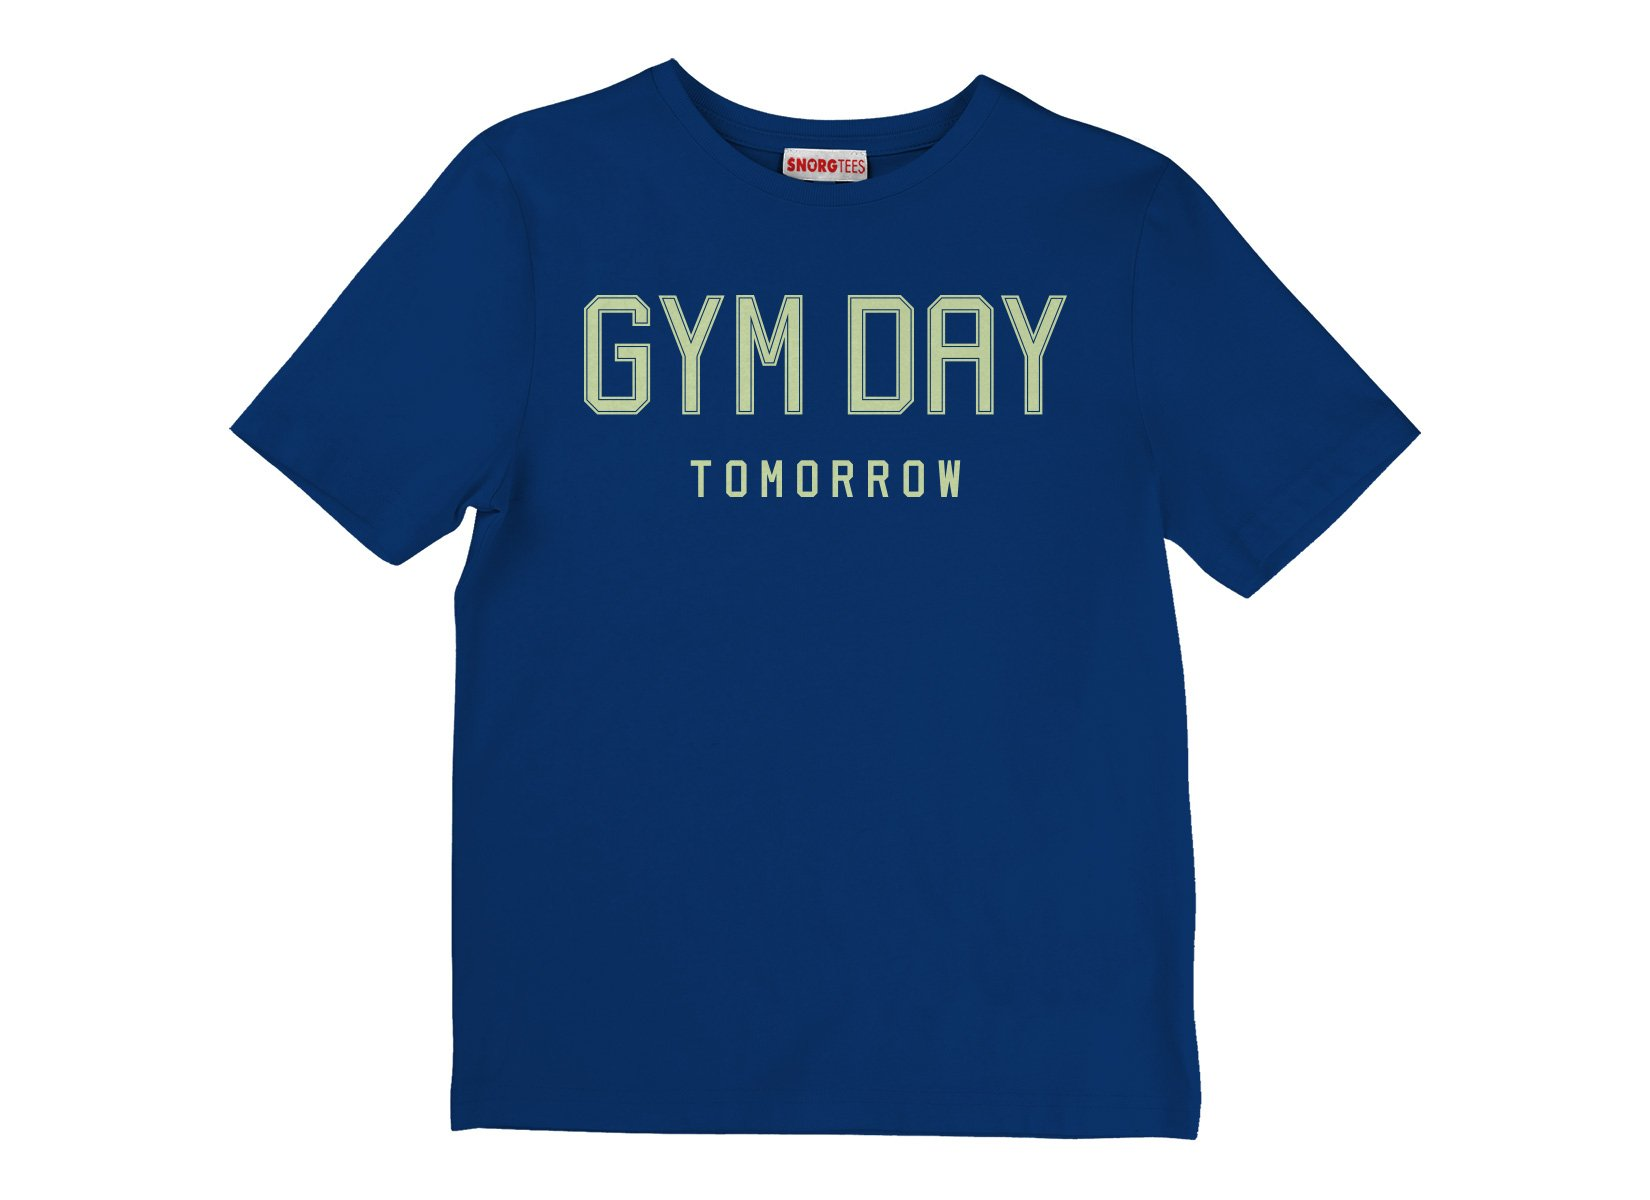 Gym Day Tomorrow on Kids T-Shirt